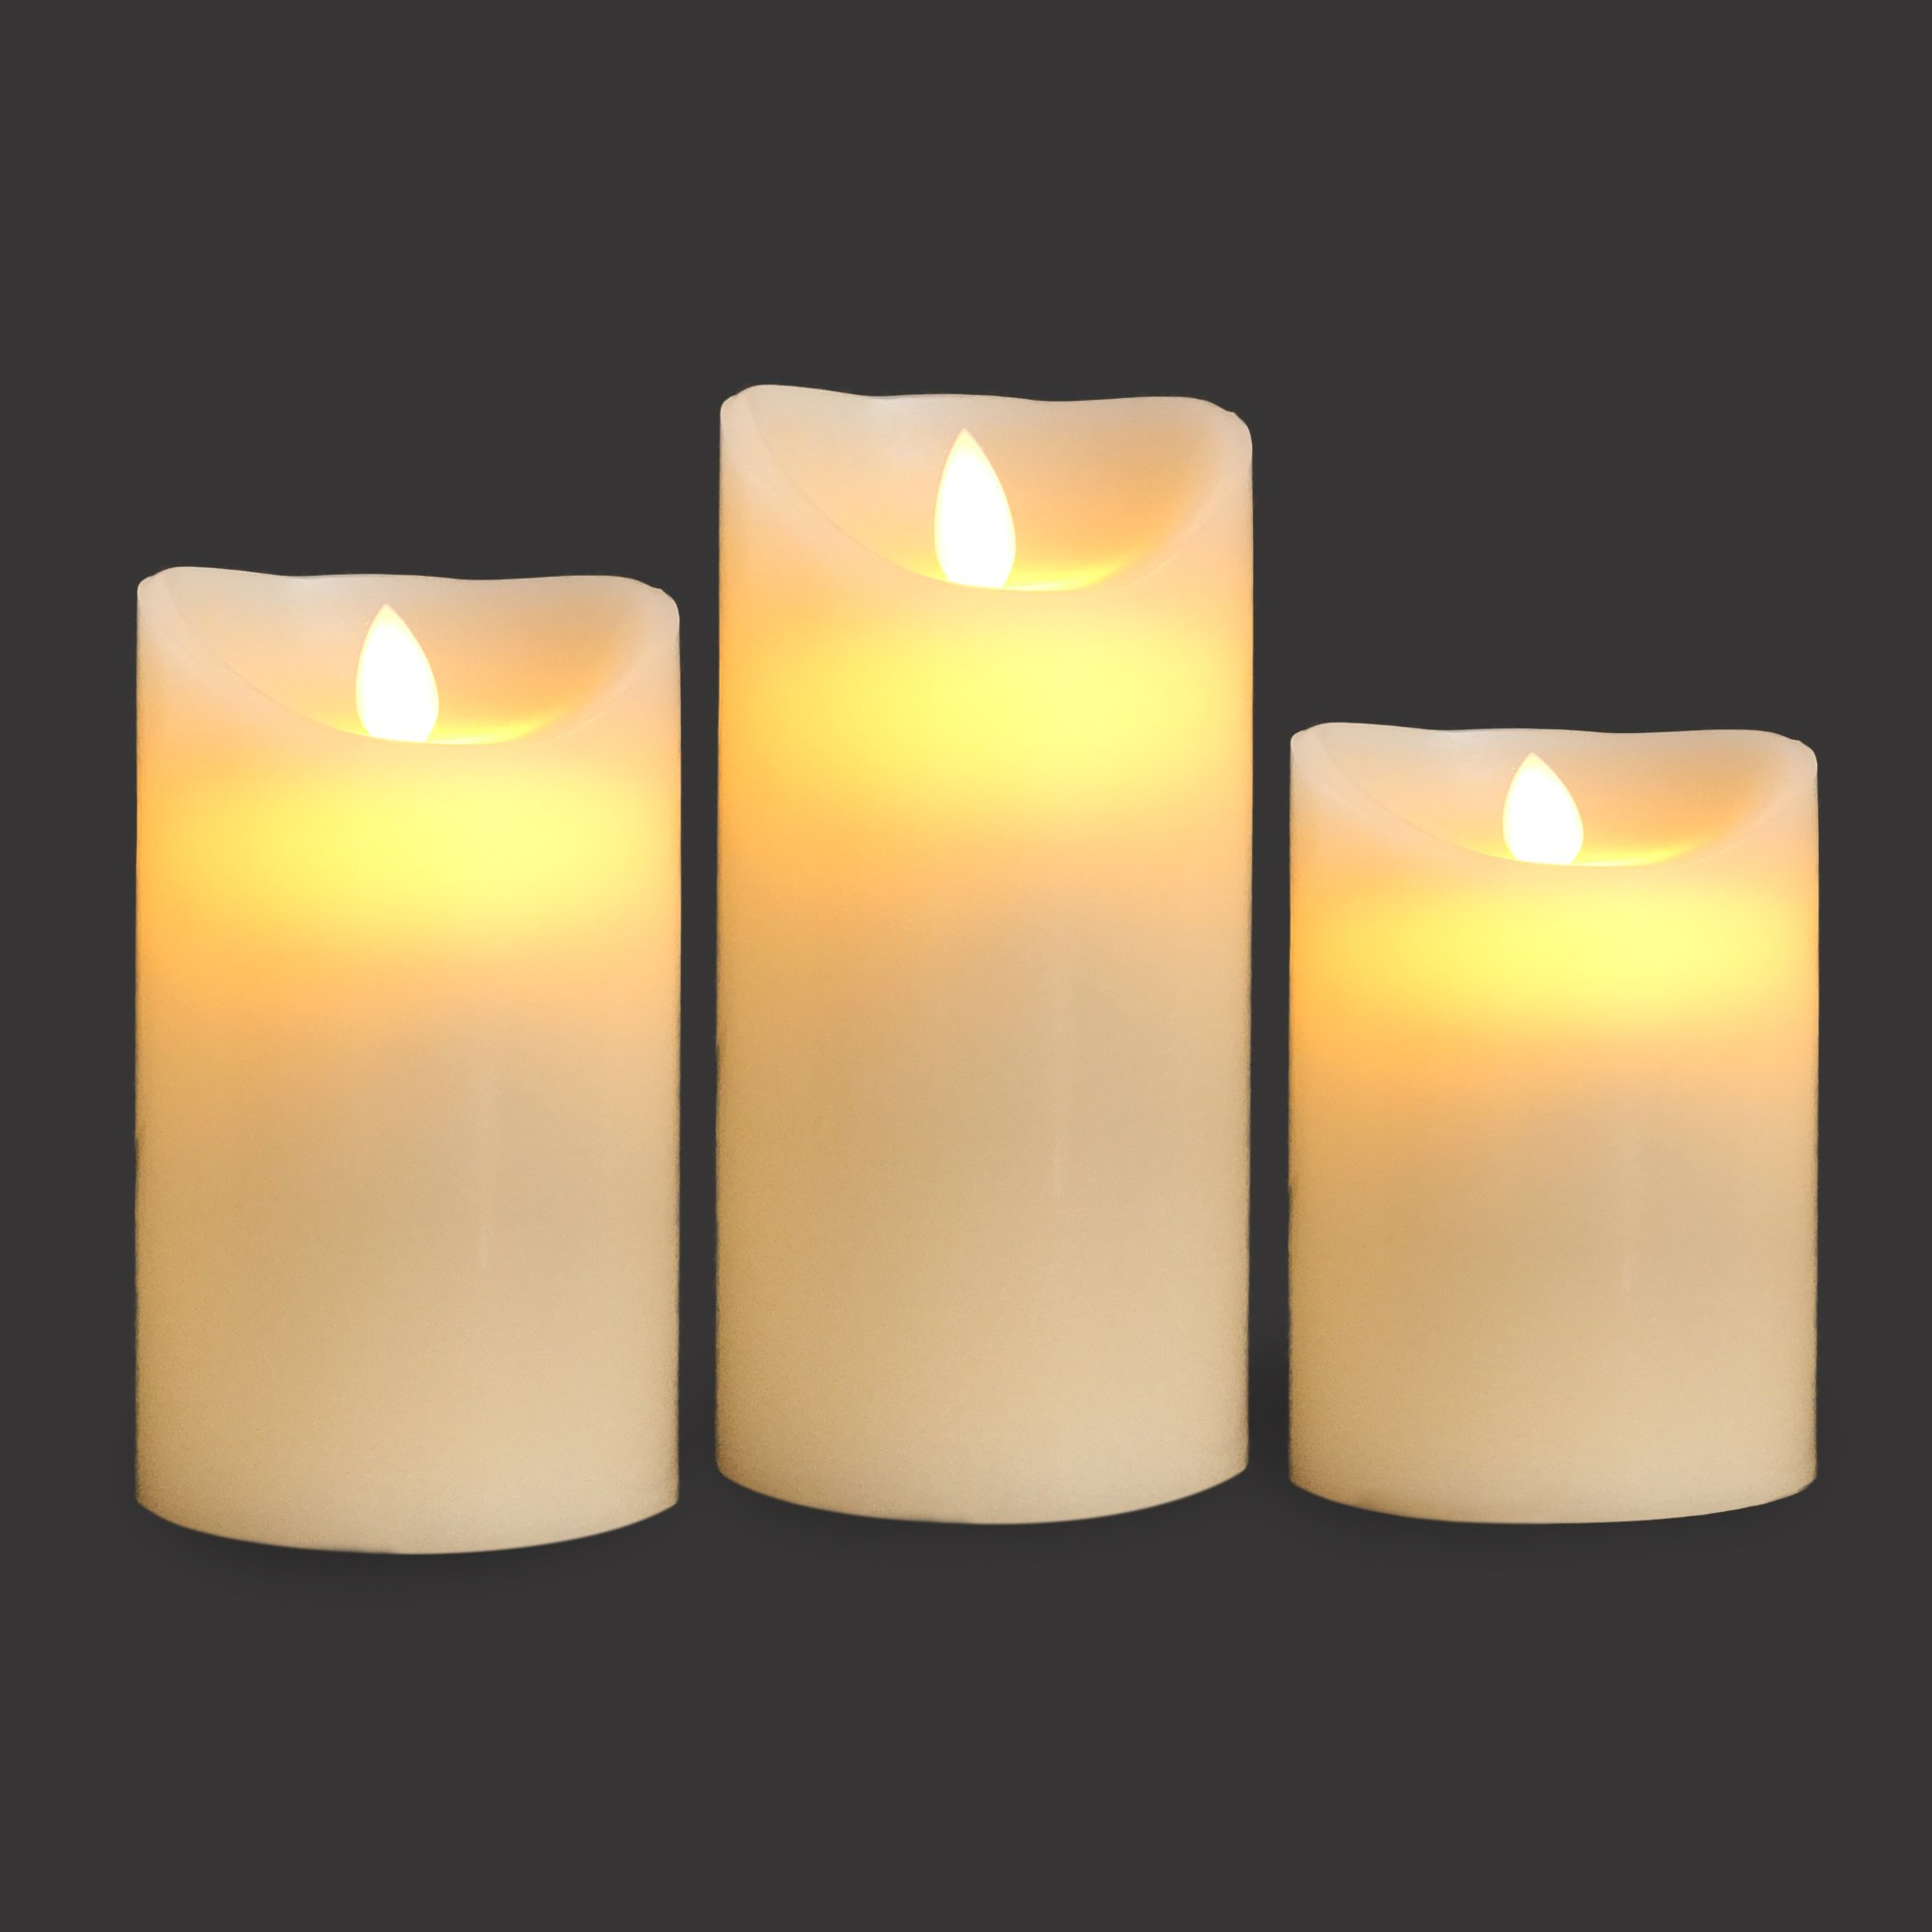 Gideon Set of 3 Flameless LED Candles (4 inch, 5 inch, 6 inch) - Real Wax & Real Flickering Candle Motion - with Multi-Function Remote (On/Off, Timer, Dimmer) - Vanilla Scented, Ivory